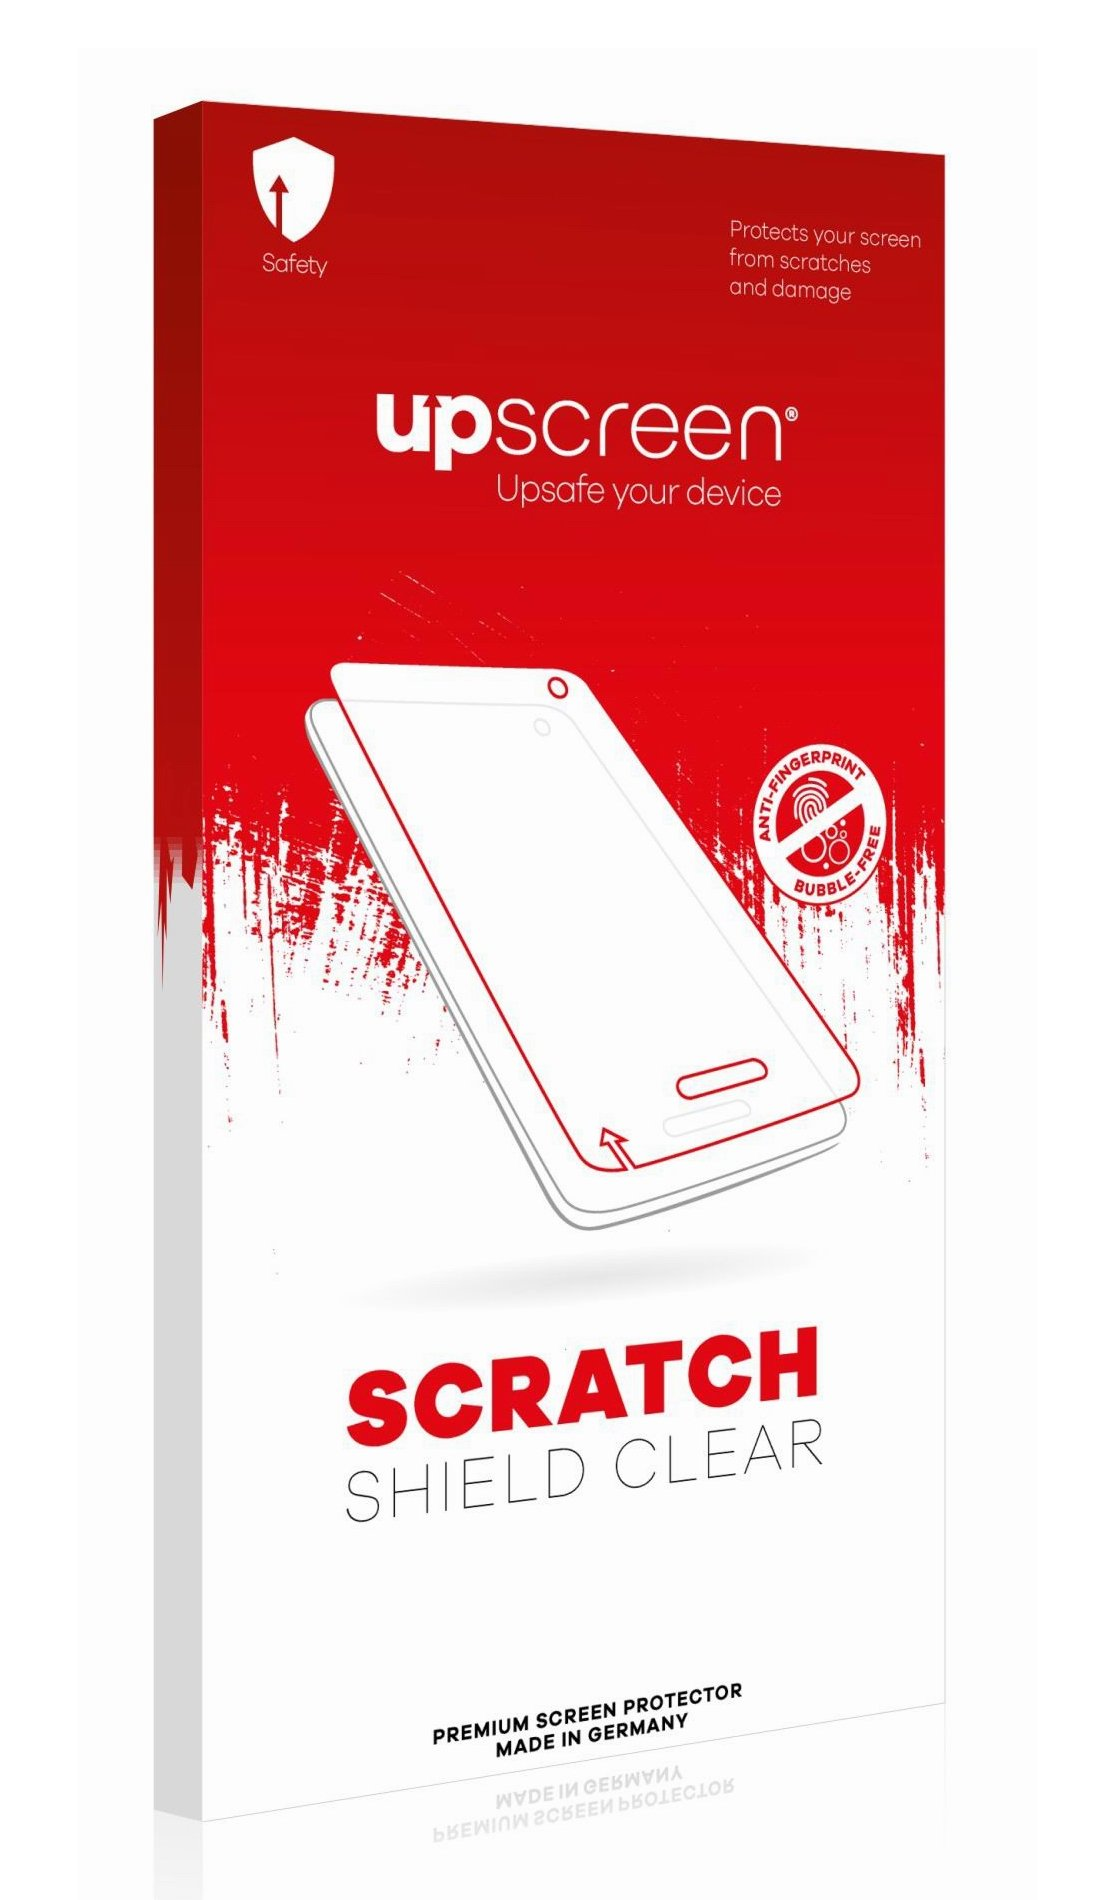 upscreen Scratch Shield Clear Screen Protector for Seat Easy Connect (6.5), Strong Scratch Protection, High Transparency, Multitouch optimized